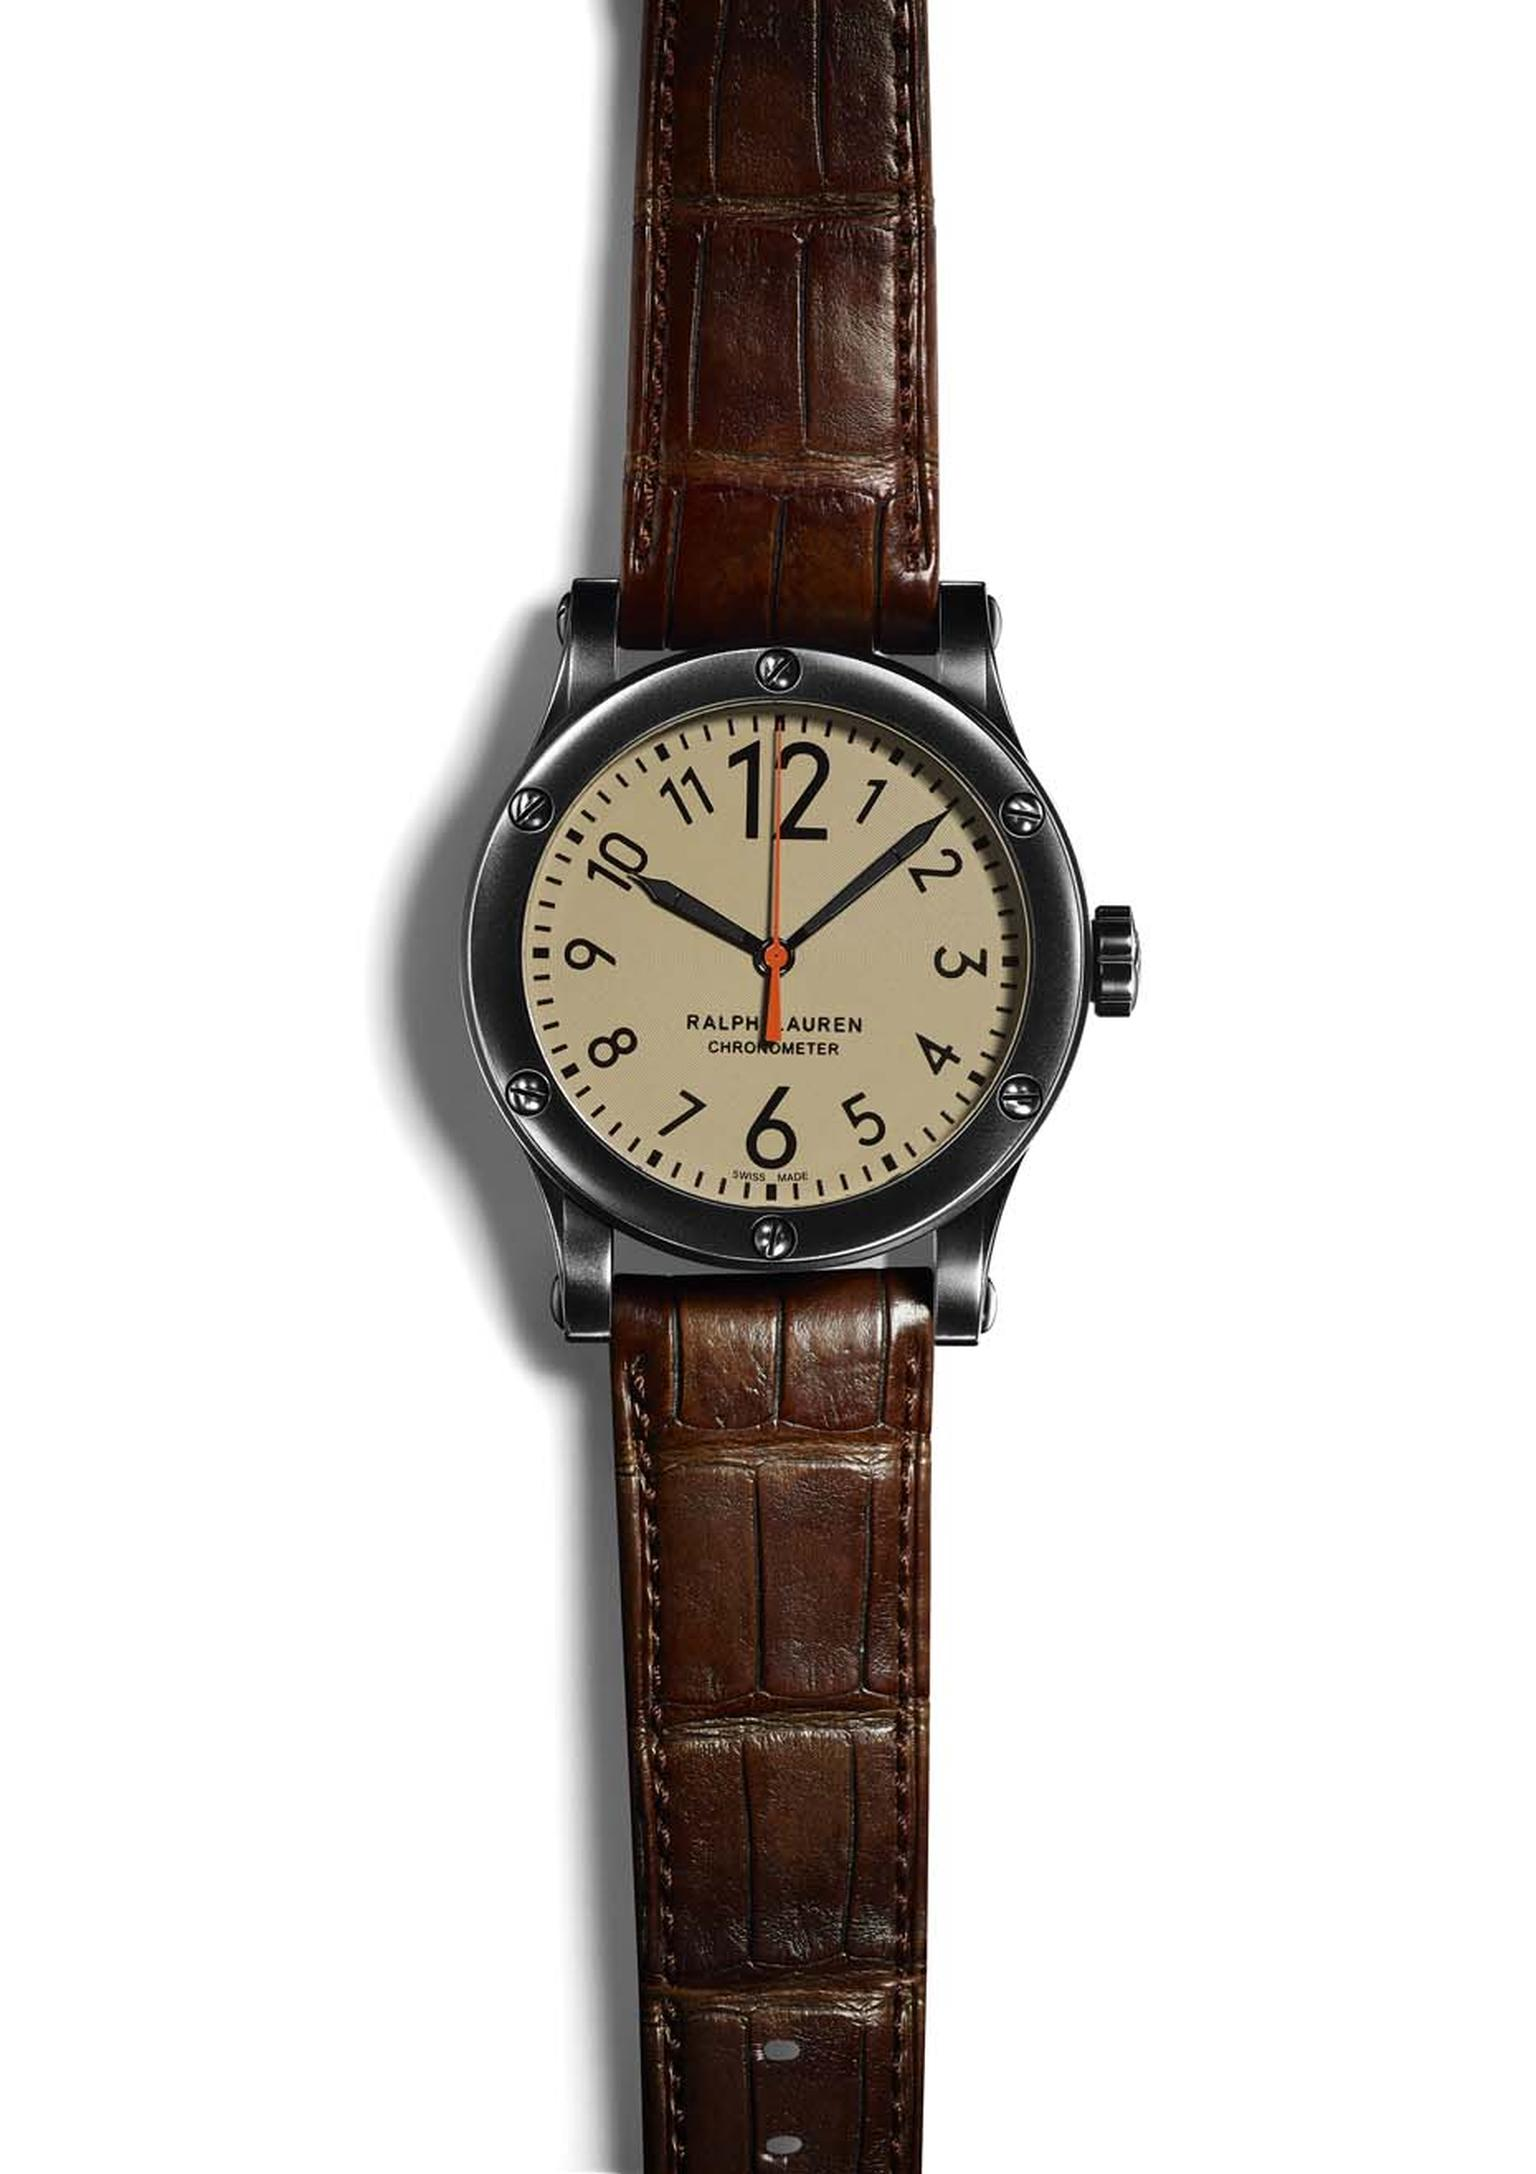 Ralph Lauren_Safari watches_Safari Kaki watch.jpg